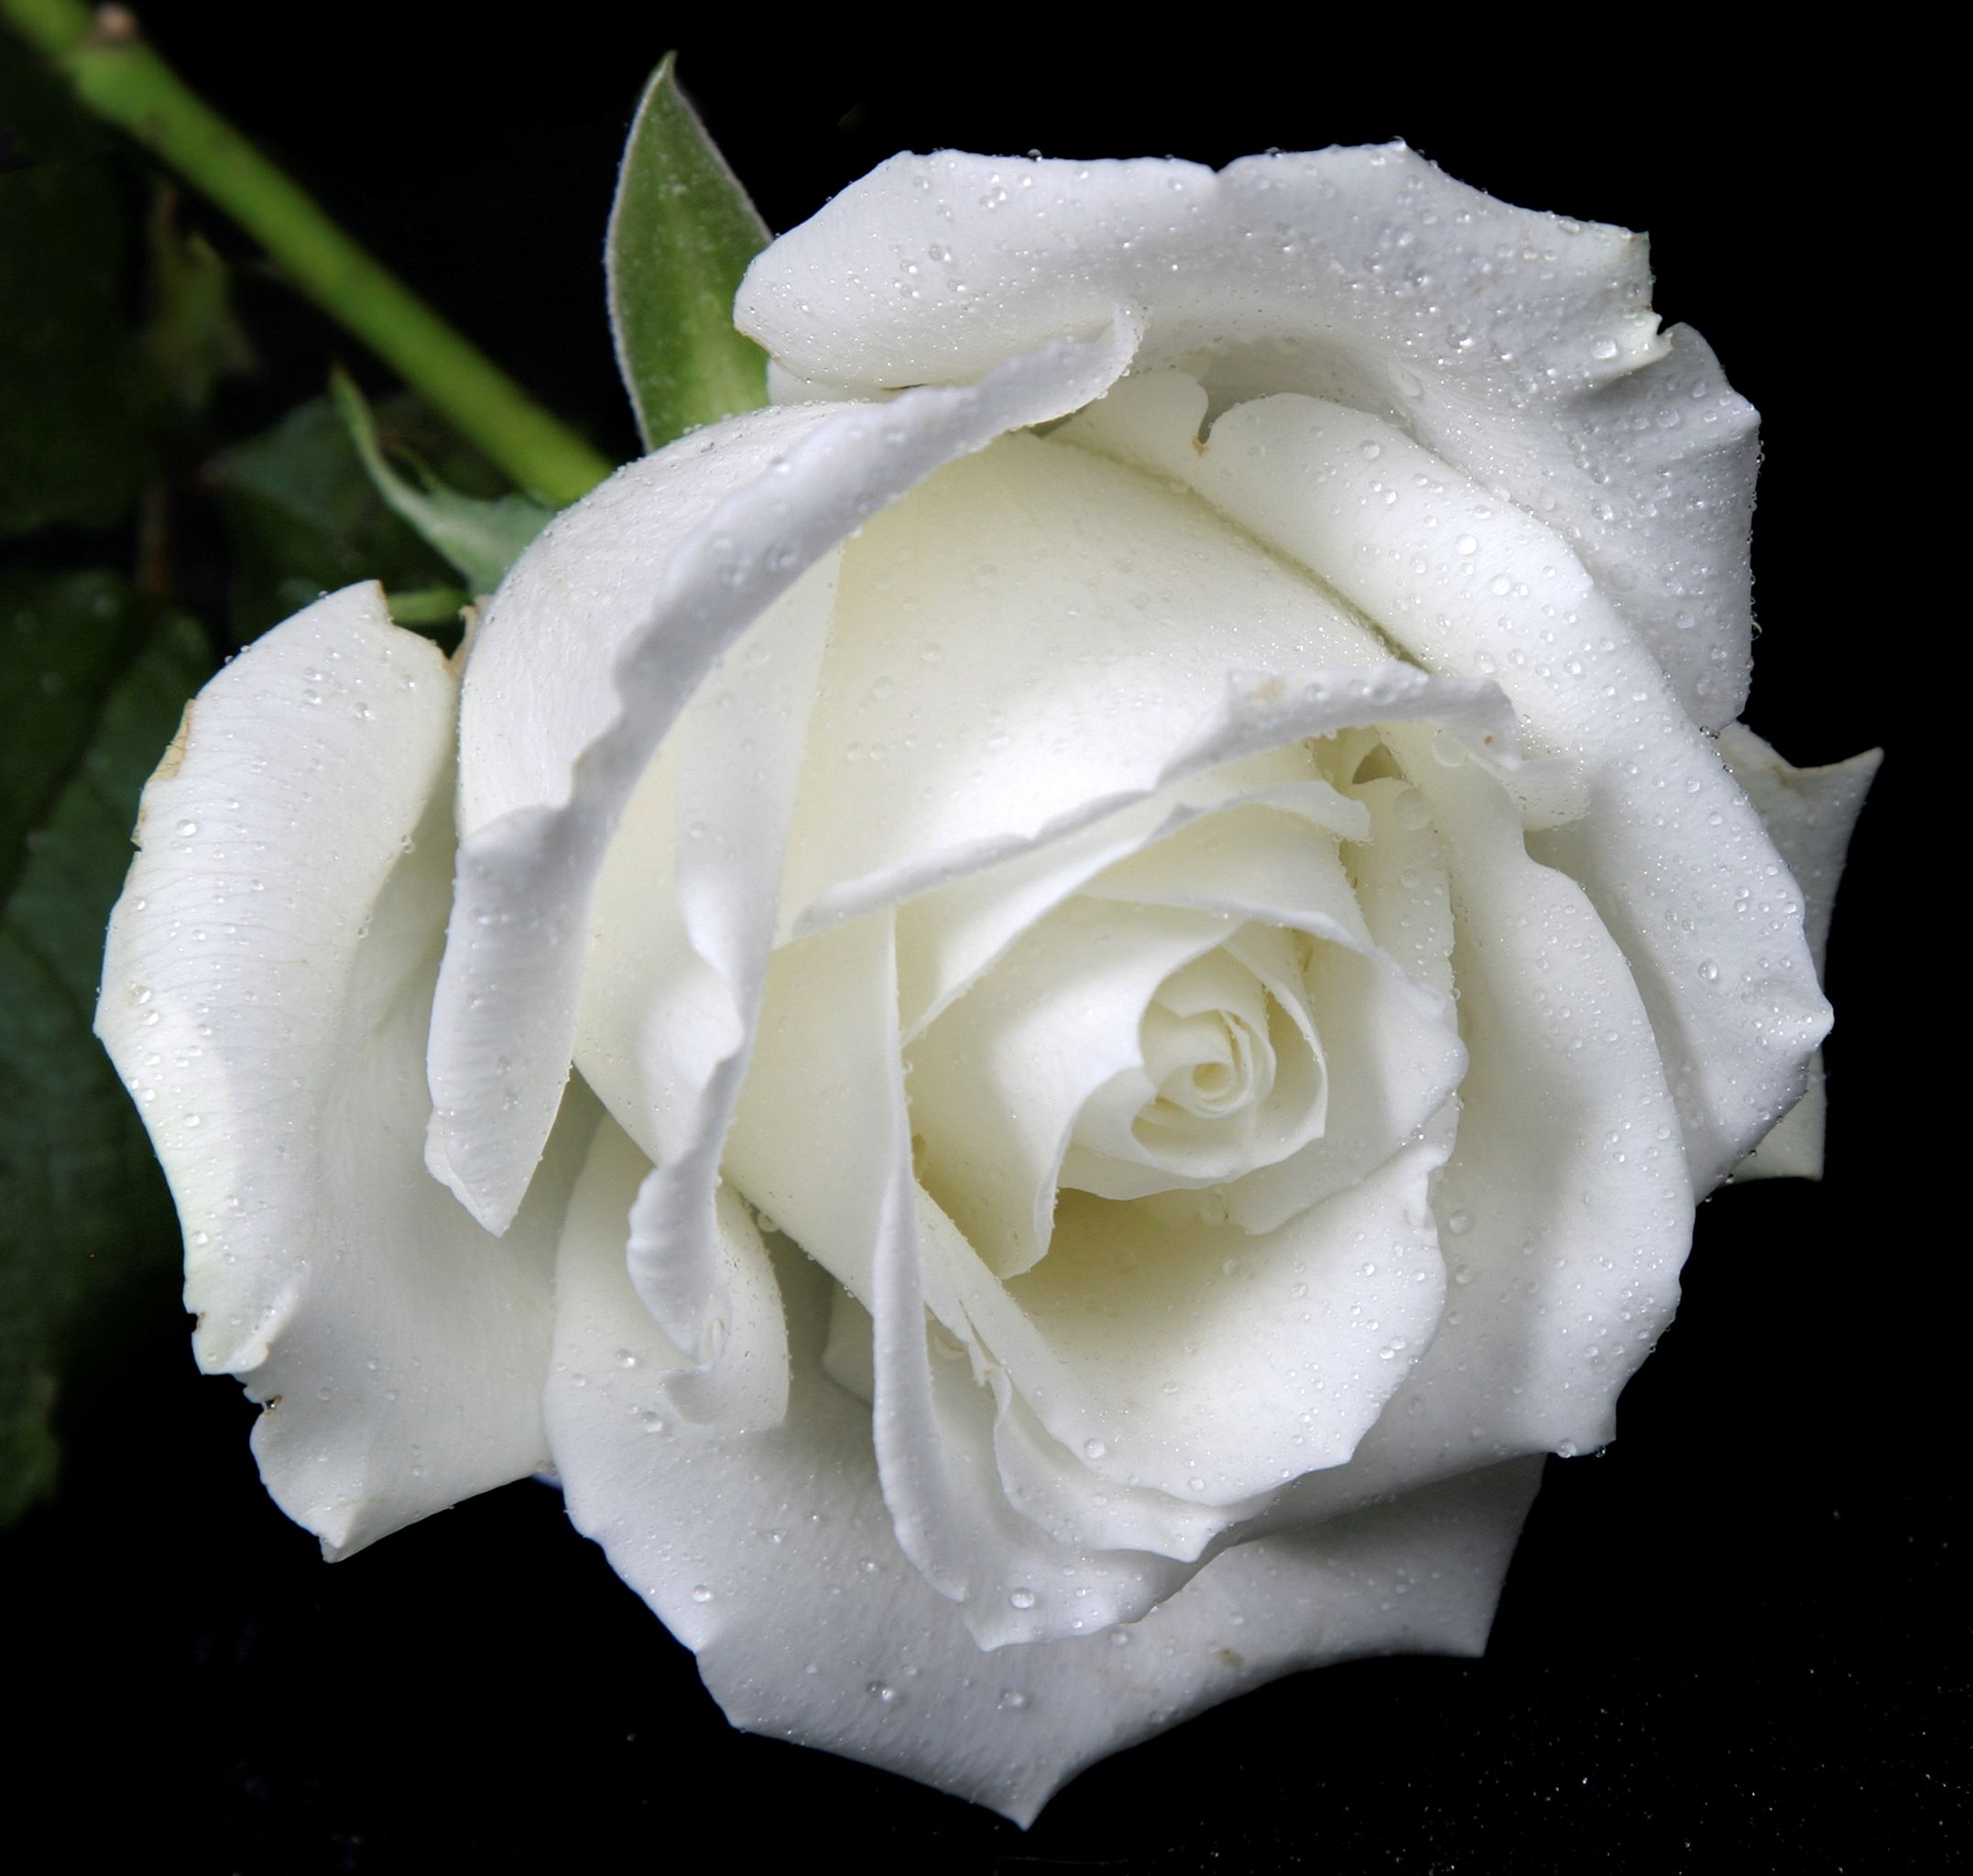 The white rose invitation ideas and pics pinterest flowers white rose flower meaningwhite rose flower white rose symbolic white flowers white rose meaning without vibrant color to upstage it biocorpaavc Choice Image